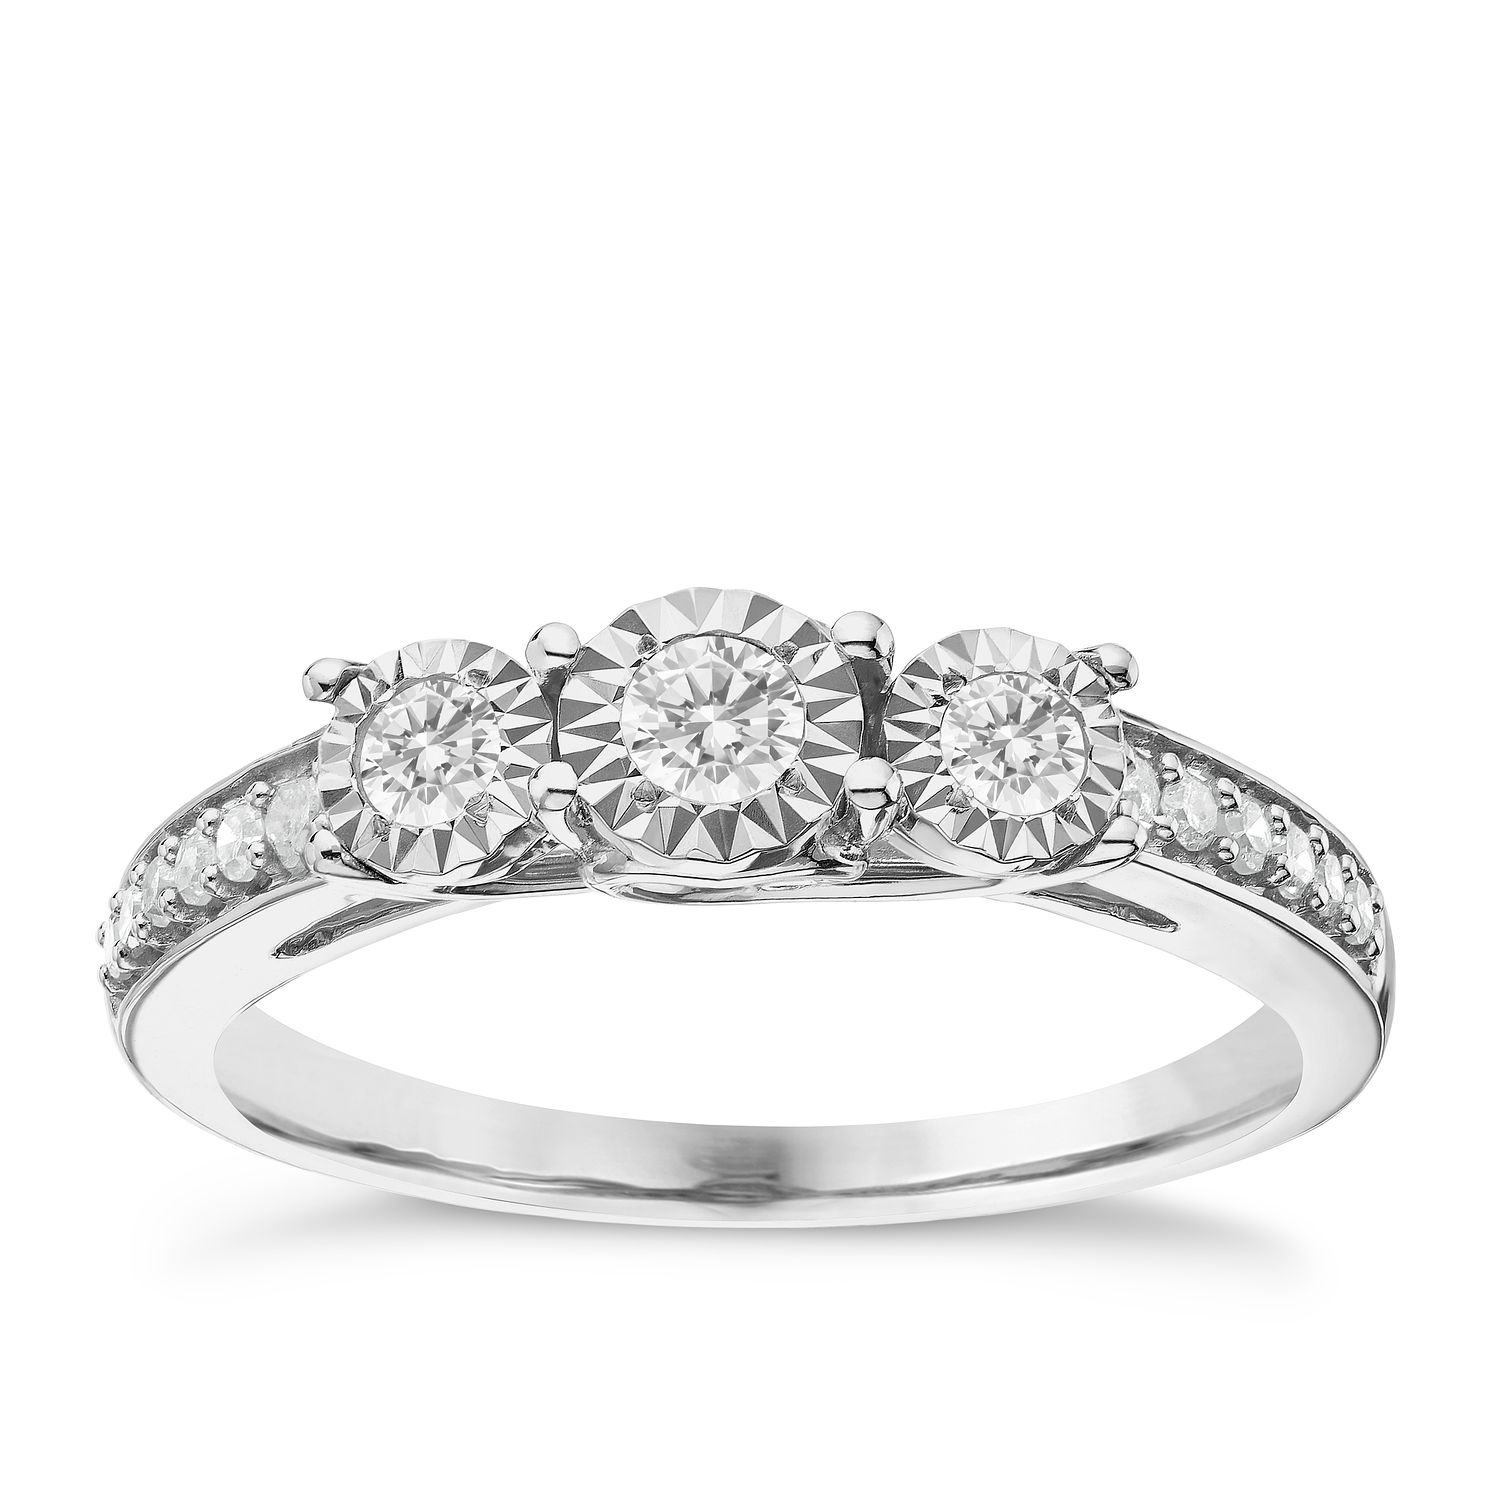 Three Stone Engagement Rings Diamond Rings Ernest Jones